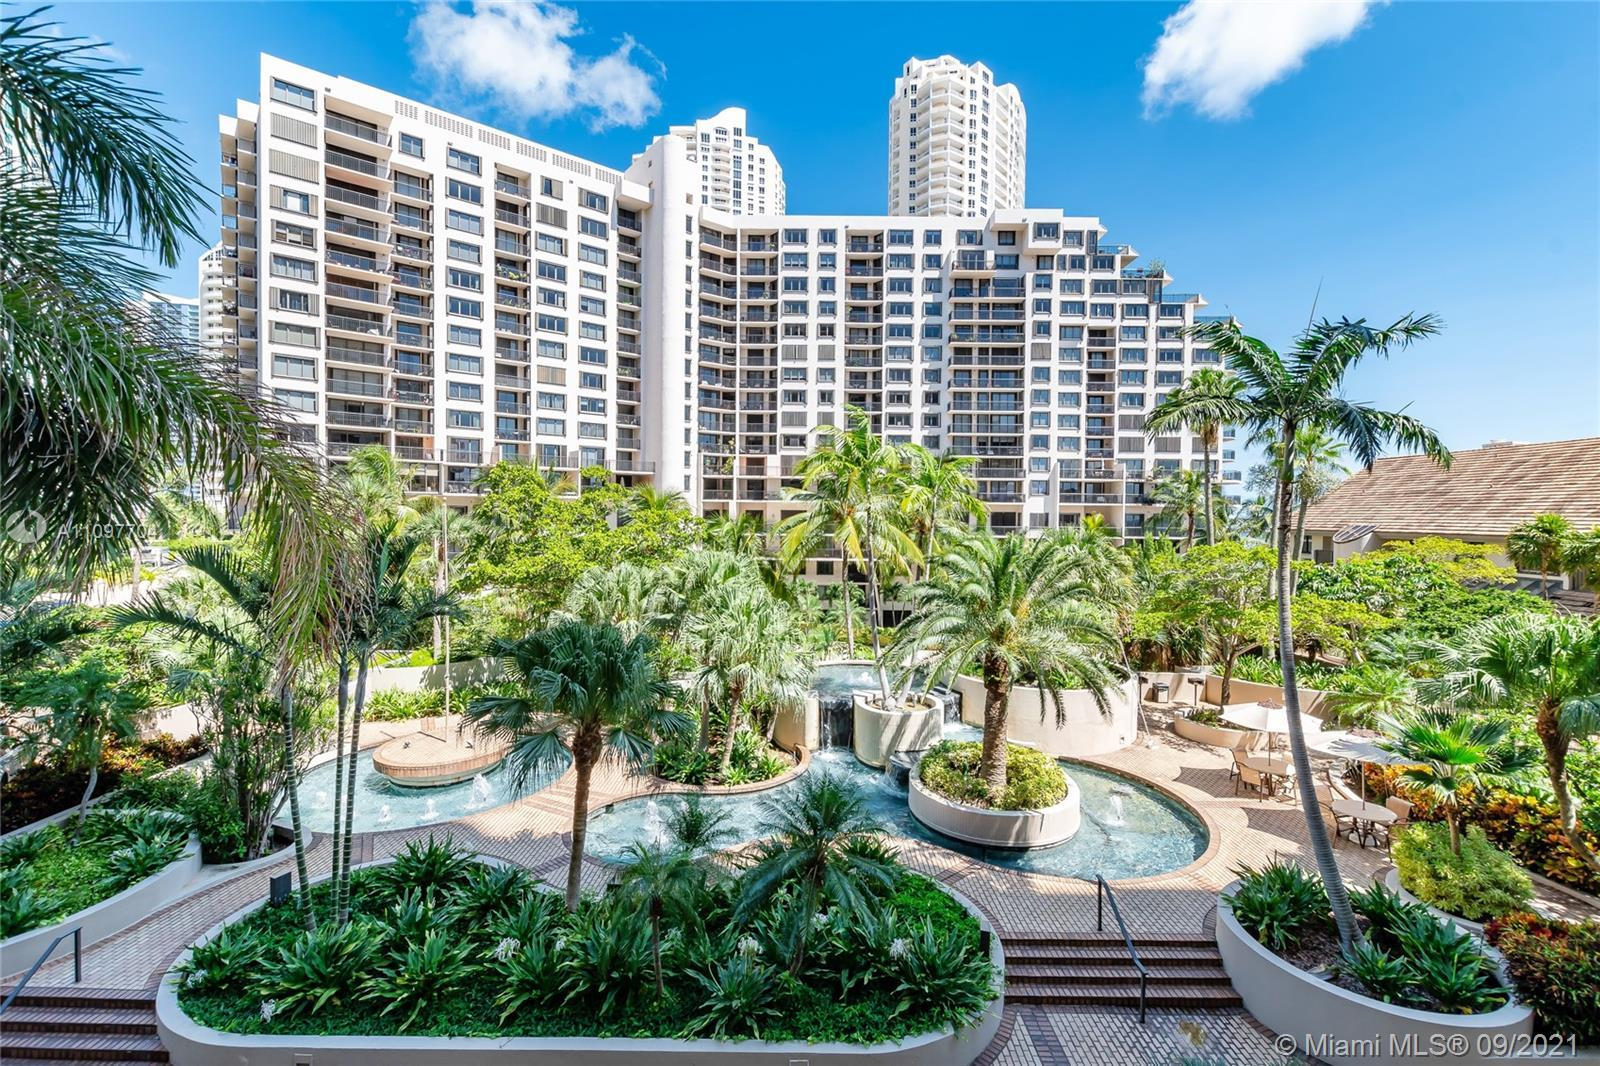 Live on the exclusive island of Brickell Key, Gated condominium within gated island. Very spacious 2